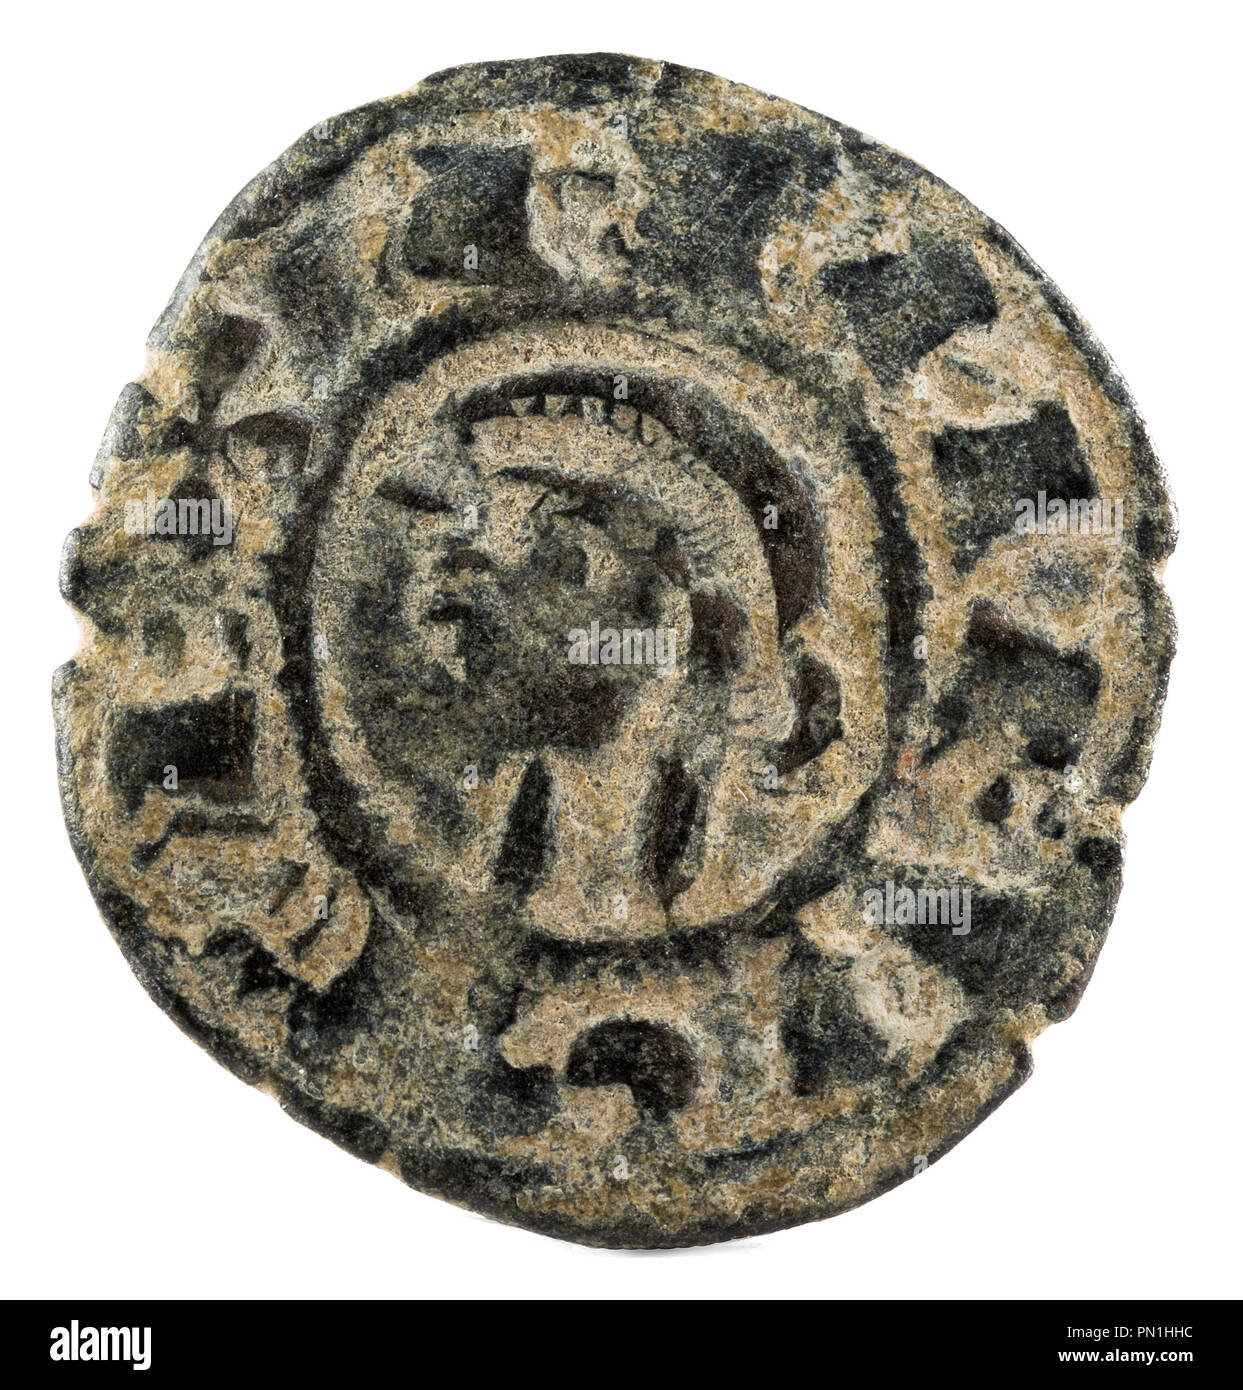 Ancient medieval fleece coin of the King Alfonso VIII. Dinero. Coined in Toledo. Spain. Obverse. - Stock Image